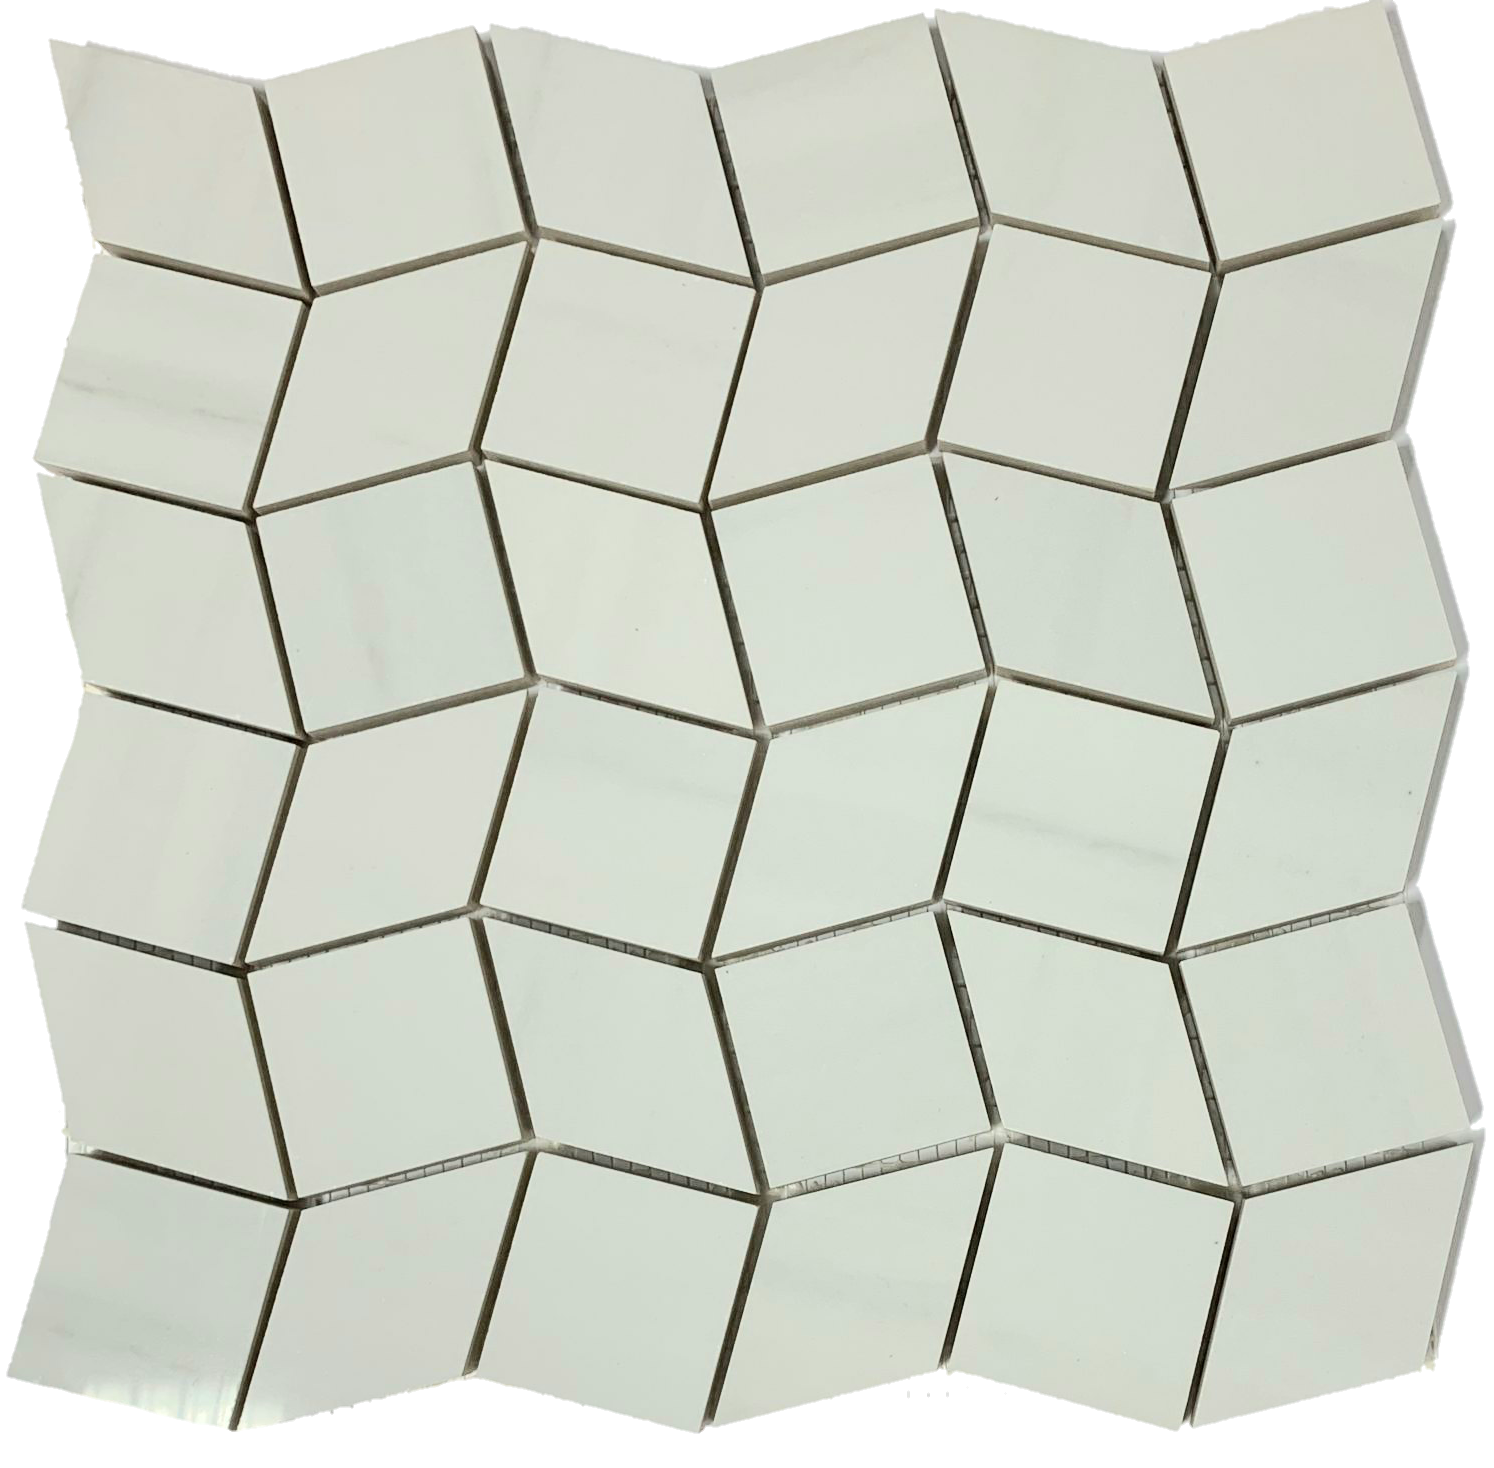 2 x 2 Dolomite R+Q Diamond shape polished porcelain mosaic